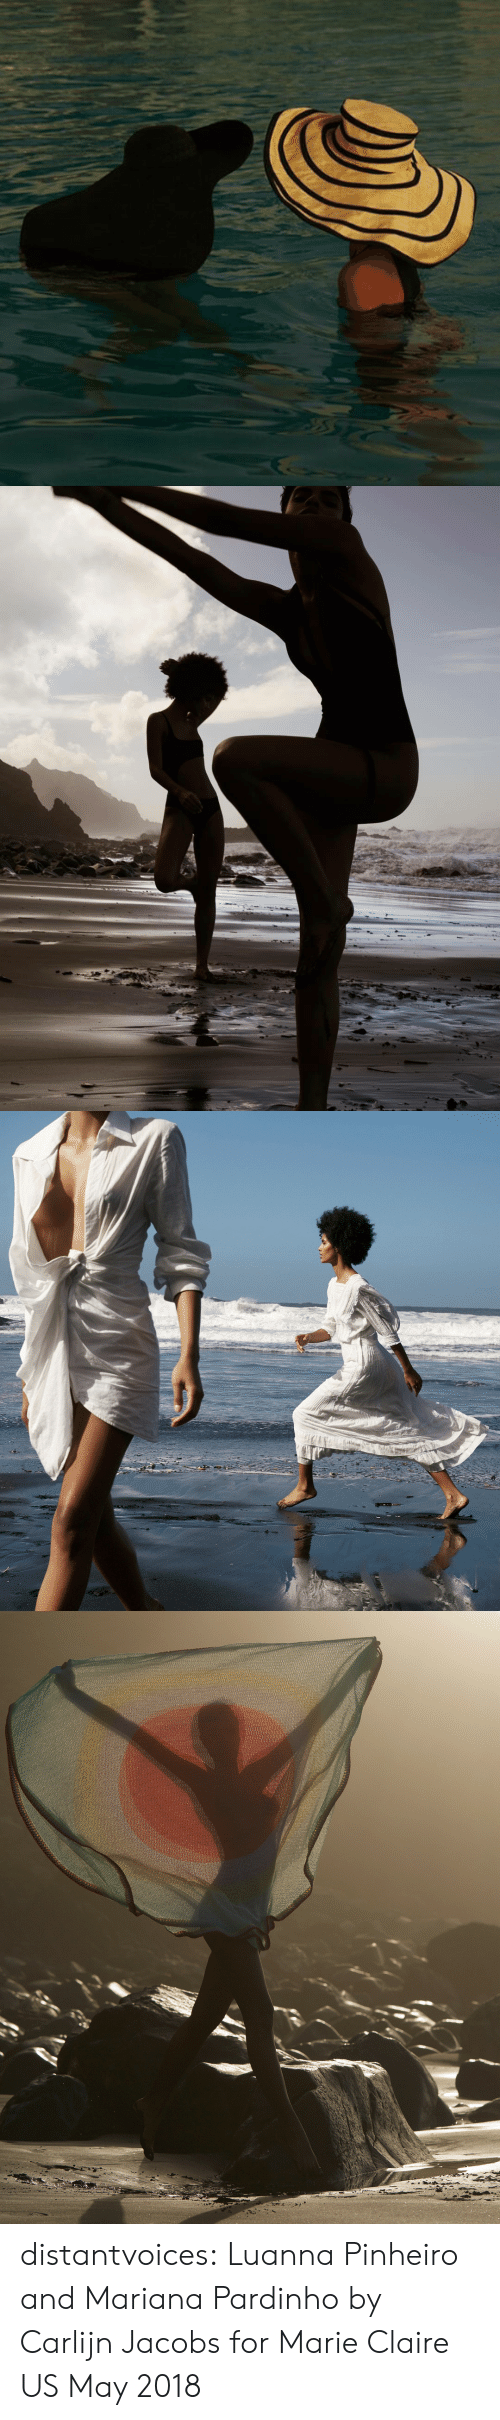 Mariana: distantvoices: Luanna Pinheiro and Mariana Pardinho by Carlijn Jacobs for Marie Claire US May 2018